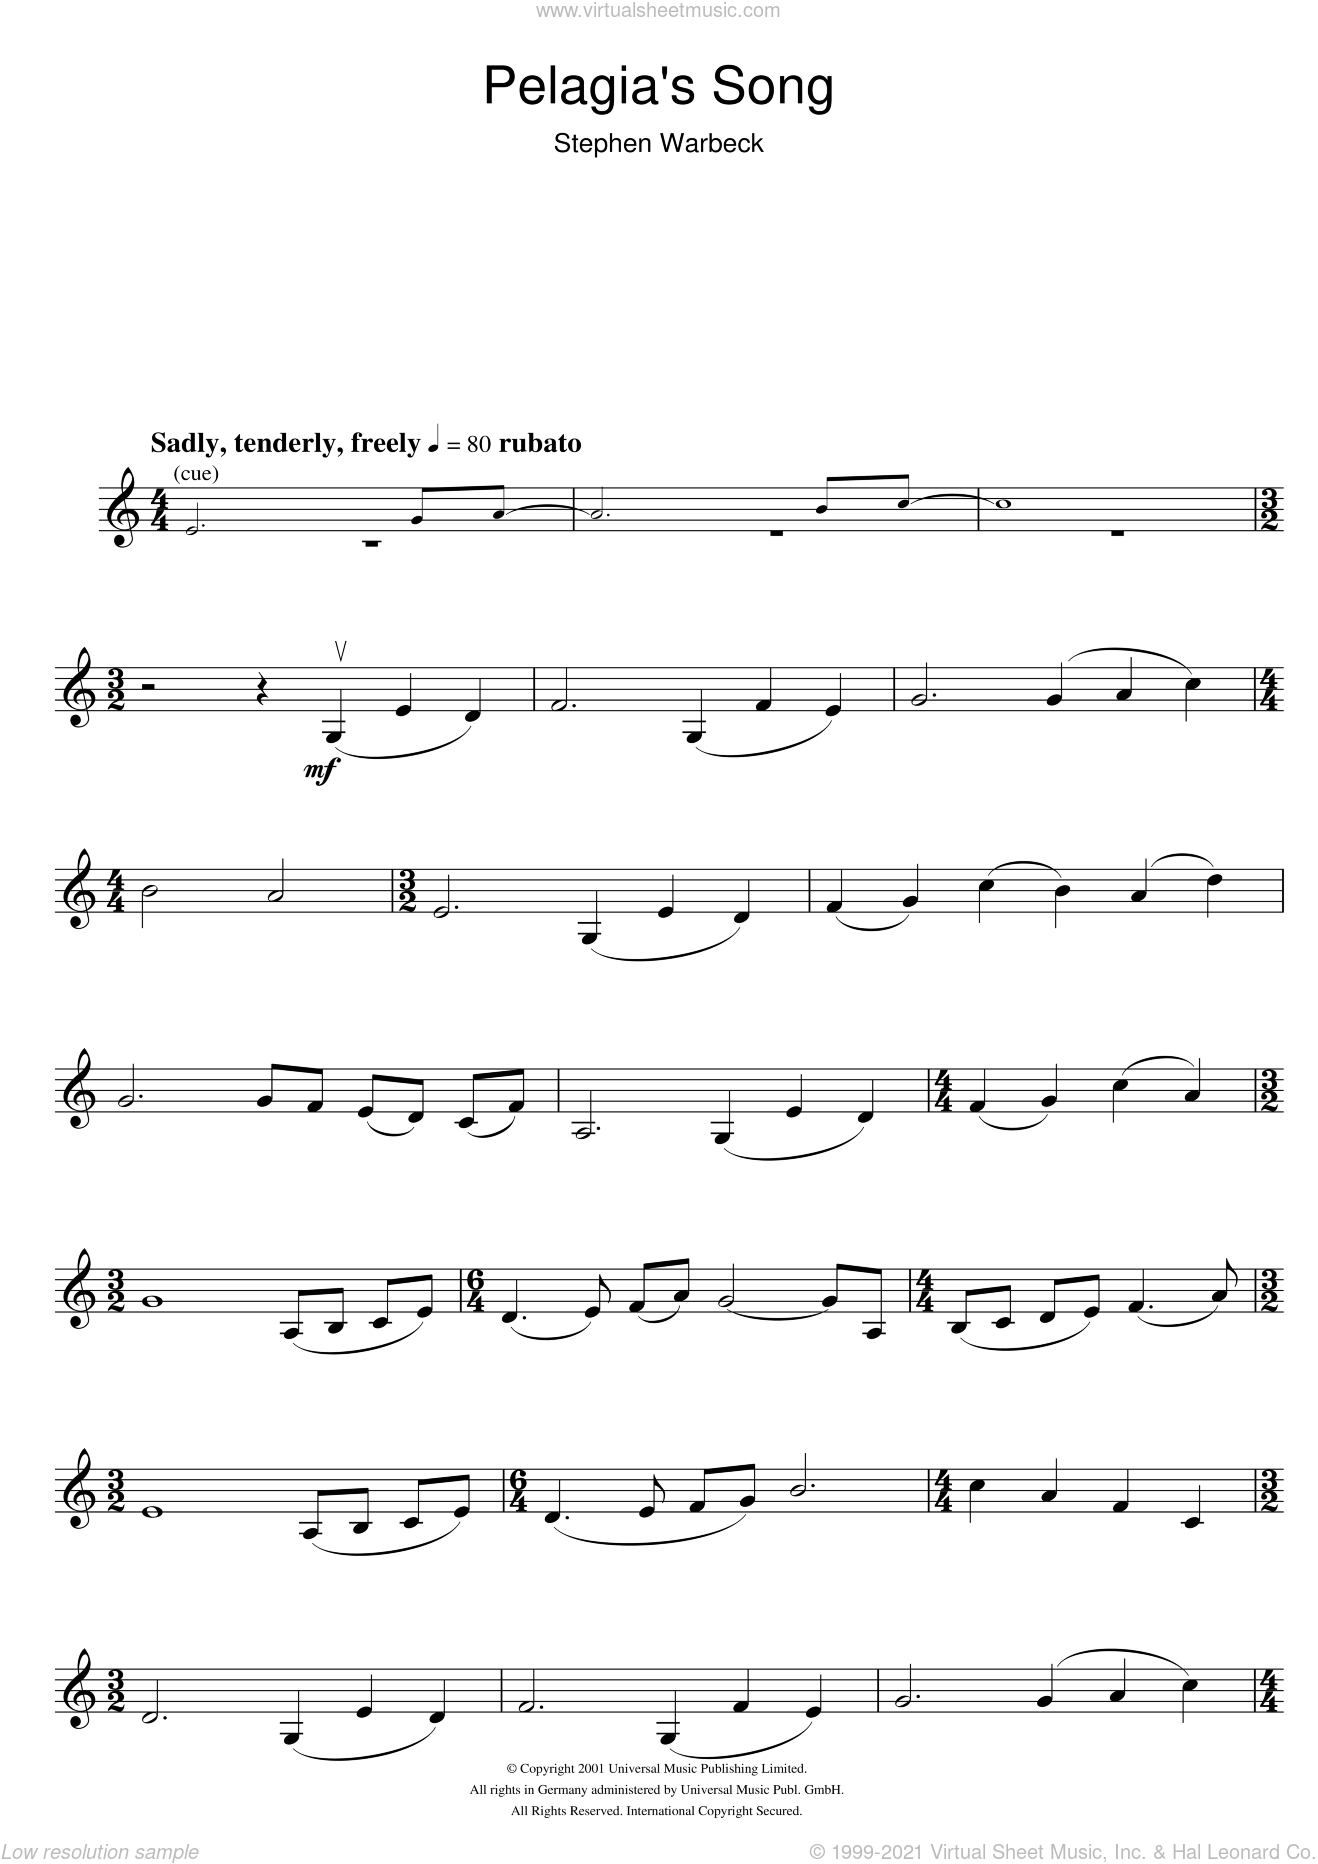 Pelagia's Song (from Captain Corelli's Mandolin) sheet music for violin solo by Stephen Warbeck, intermediate skill level